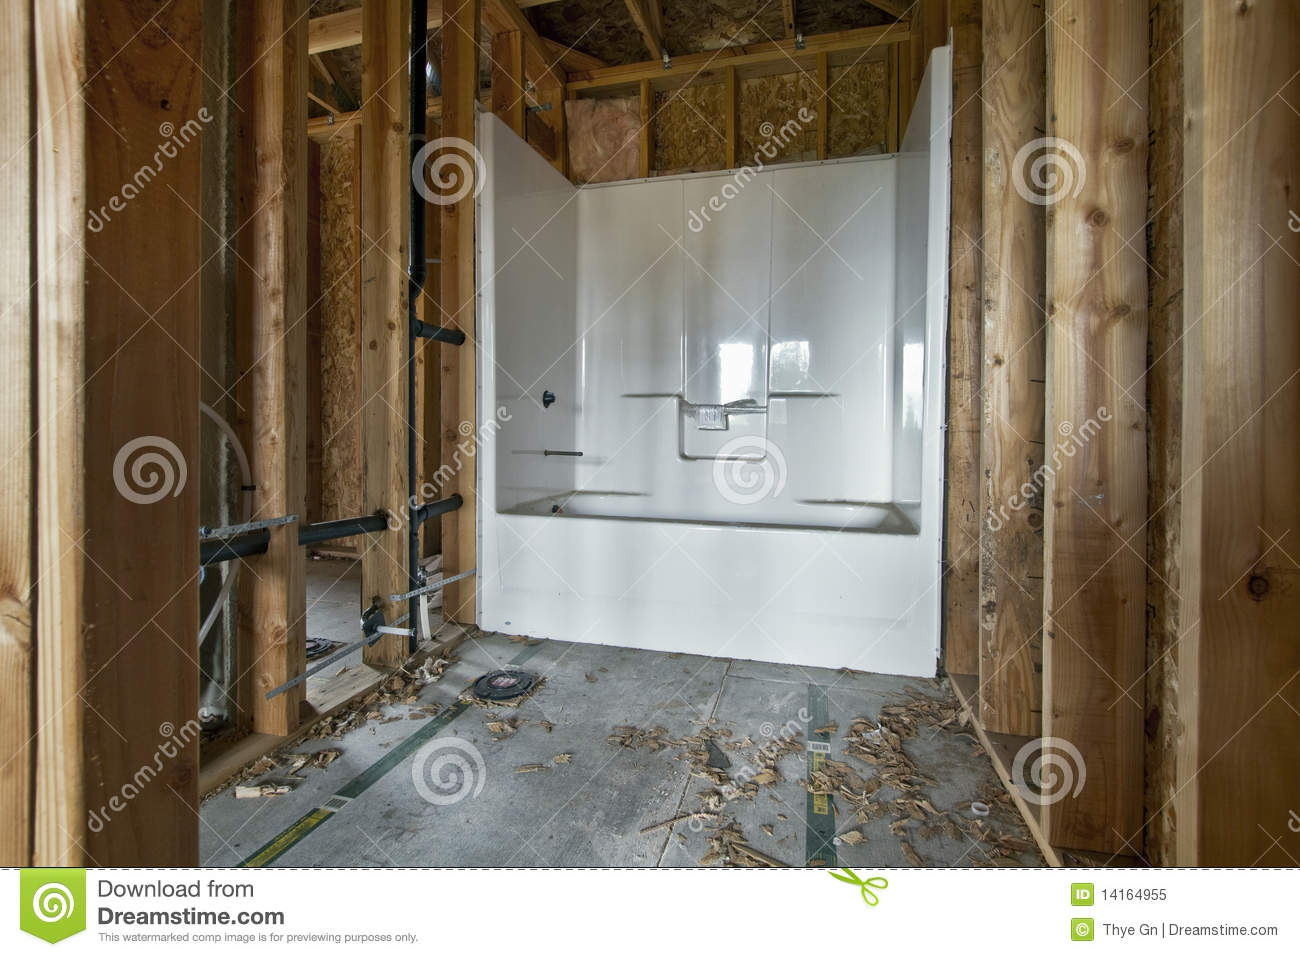 Home Bathroom Construction 2 Stock Image Image 14164955